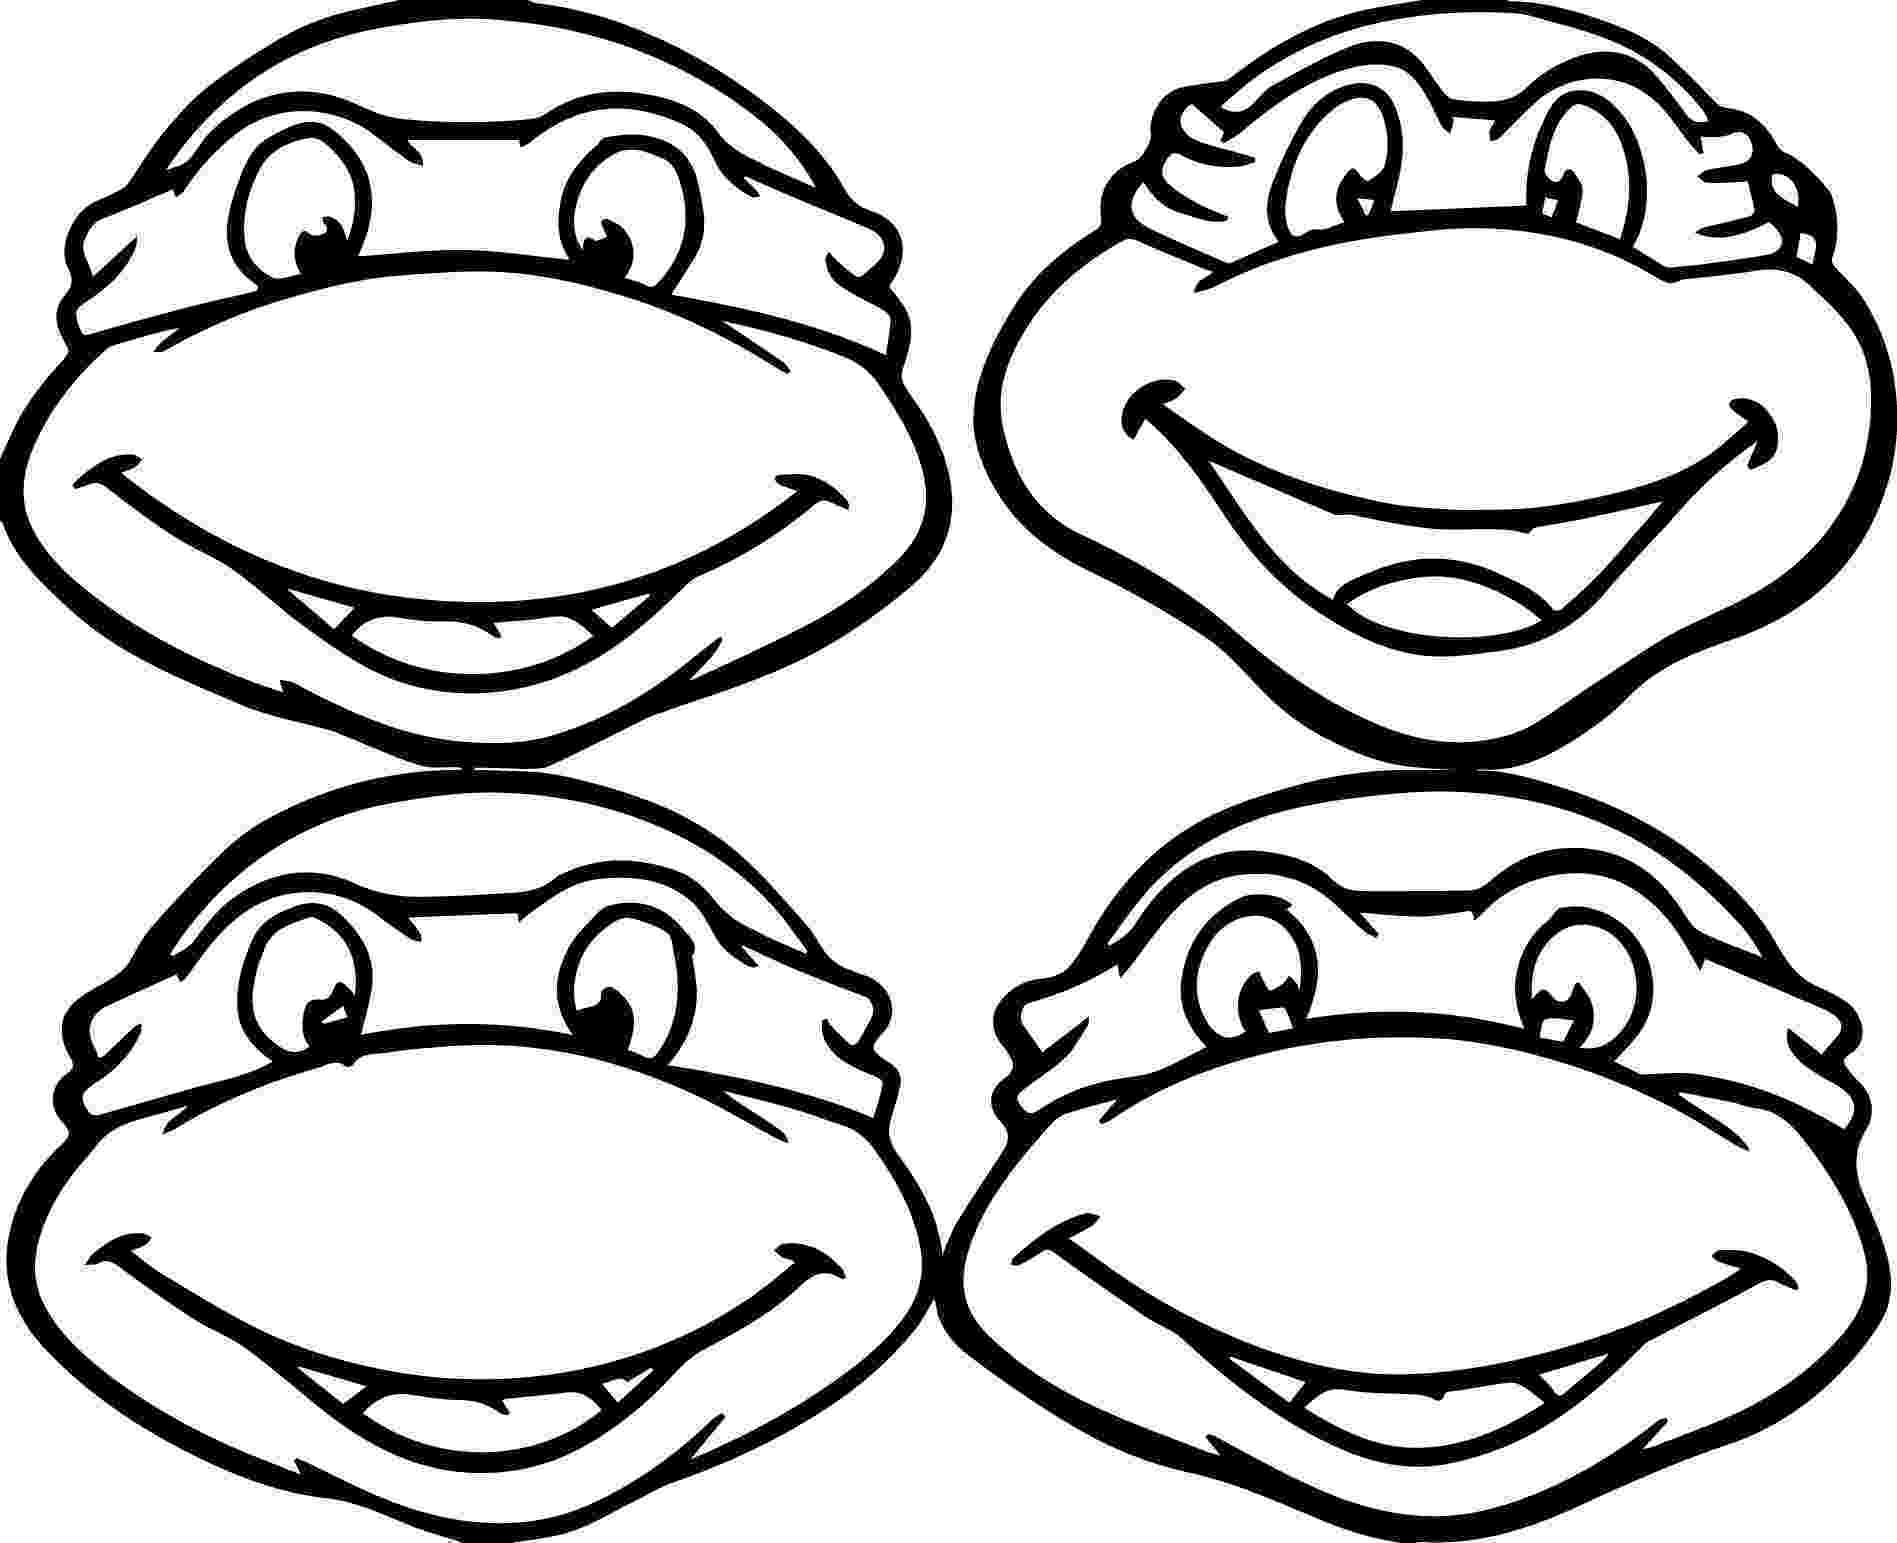 turtle coloring pictures to print turtle coloring page only coloring pages turtle pictures print to coloring